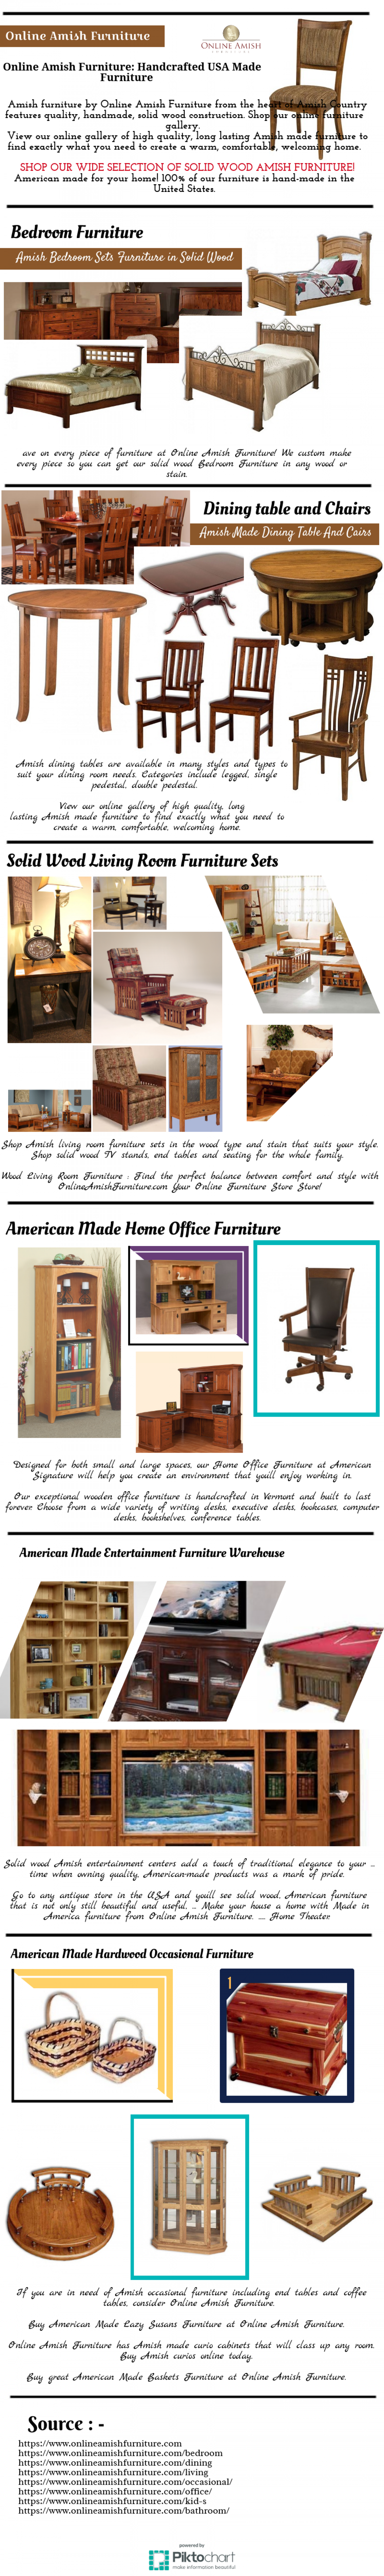 American made handcrafted, solid wood furniture and USA made online amish furniture Infographic